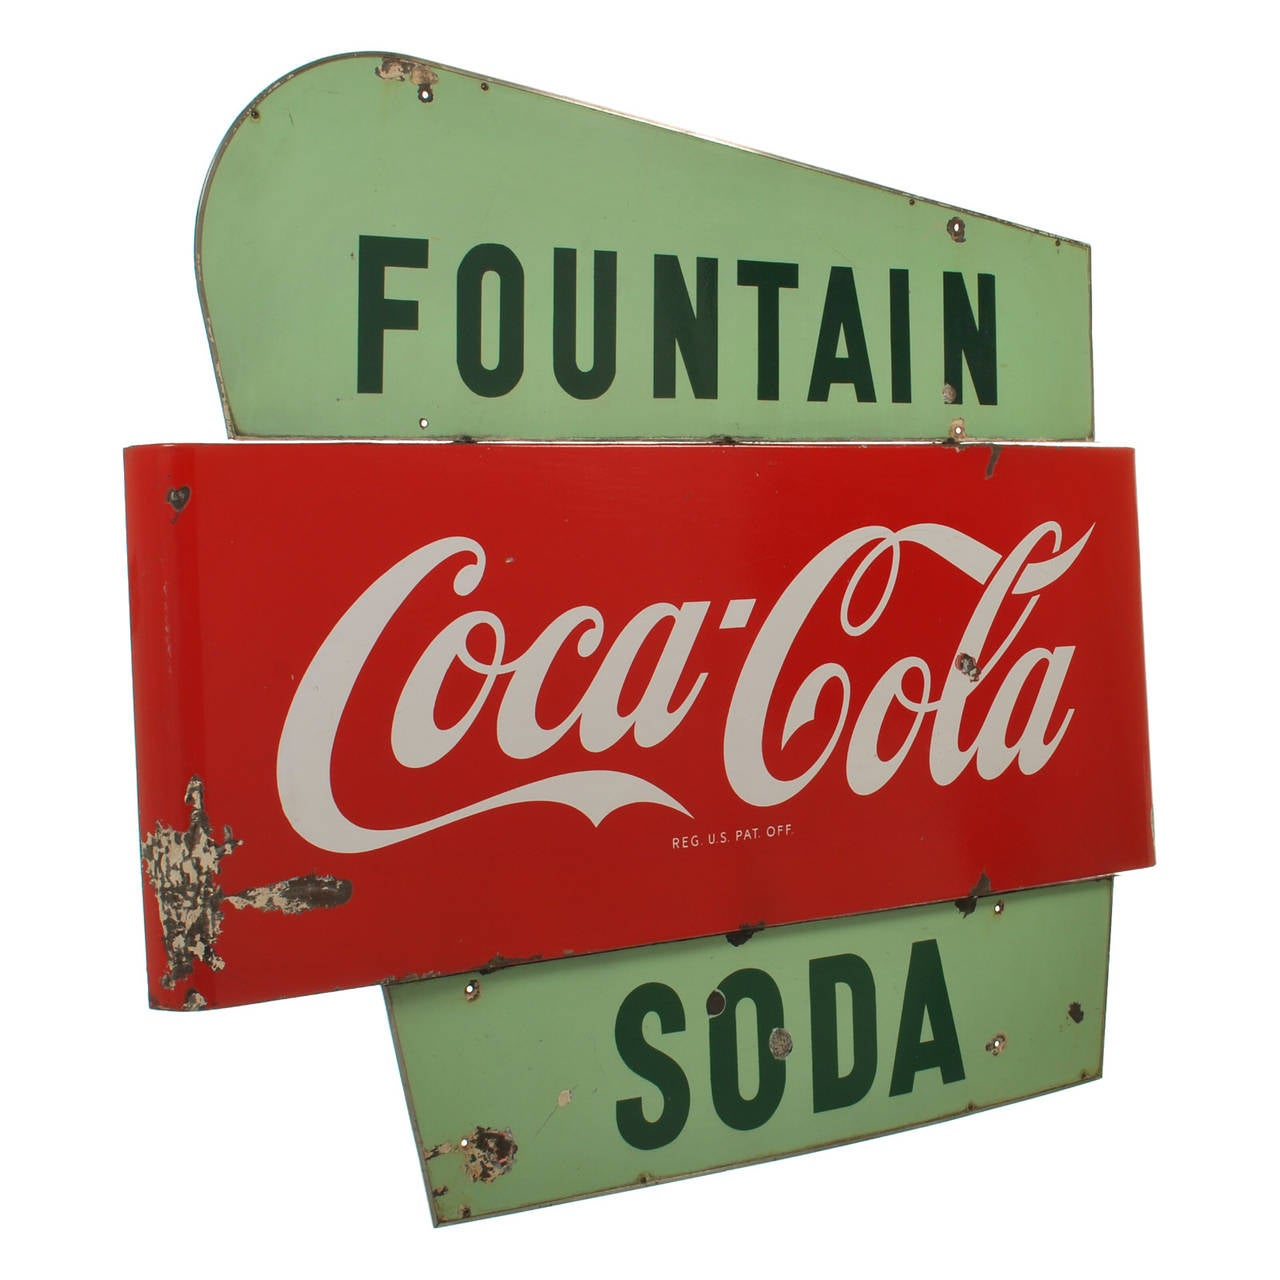 Vintage Cocacola Soda Fountain Porcelain Sign At 1stdibs. Exterminator Rochester Ny Police Patrol Boats. Breast Cancer Treatment In India. Most Rewarding Credit Card Magic Drain Yugioh. Bankruptcy Attorney Indianapolis In. Storage Container Rental Rates. Own Risk And Solvency Assessment. Sierra College Online Courses. Nursing Home Insurance Coverage